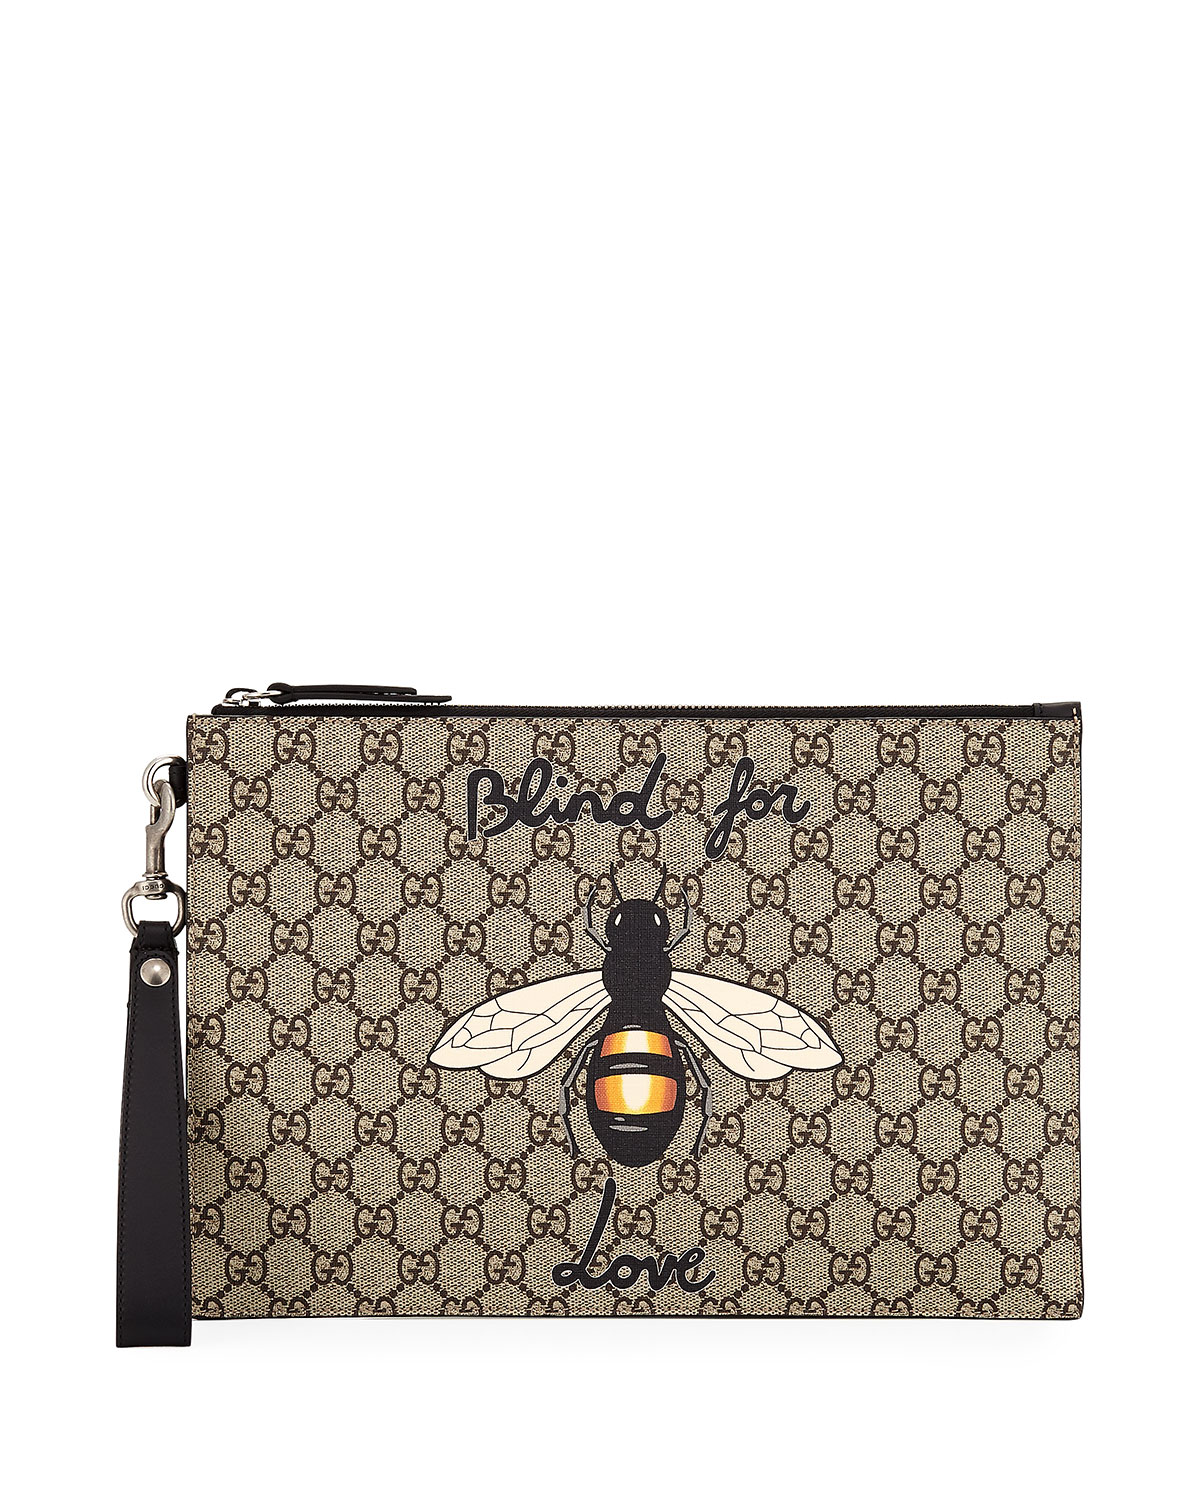 f5a5f8ecf71 Gucci Blind for Love Bee GG Supreme Pouch